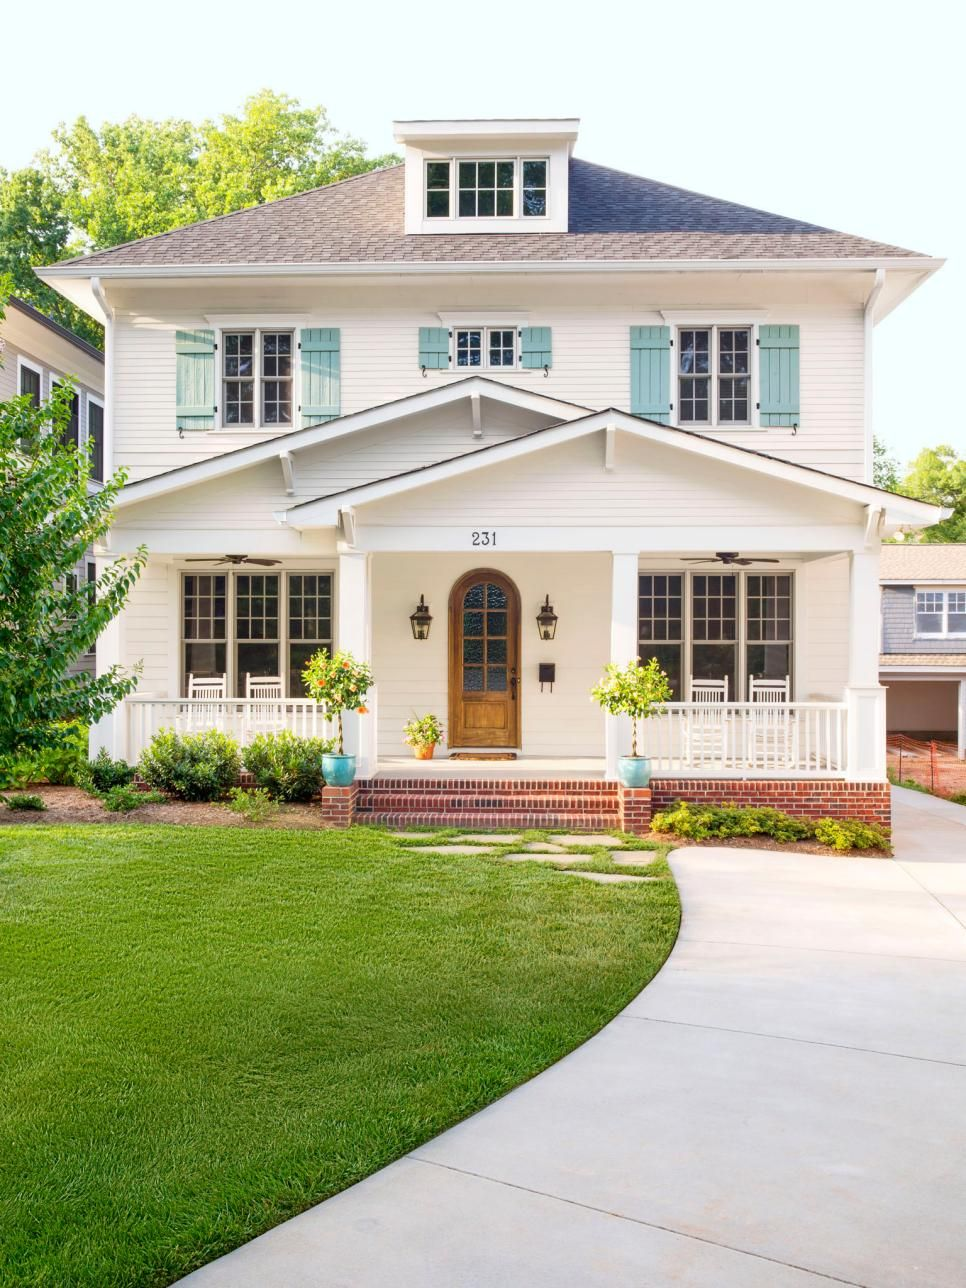 Curb appeal ideas from charlotte north carolina curb appeal curb appeal ideas from charlotte north carolina malvernweather Images